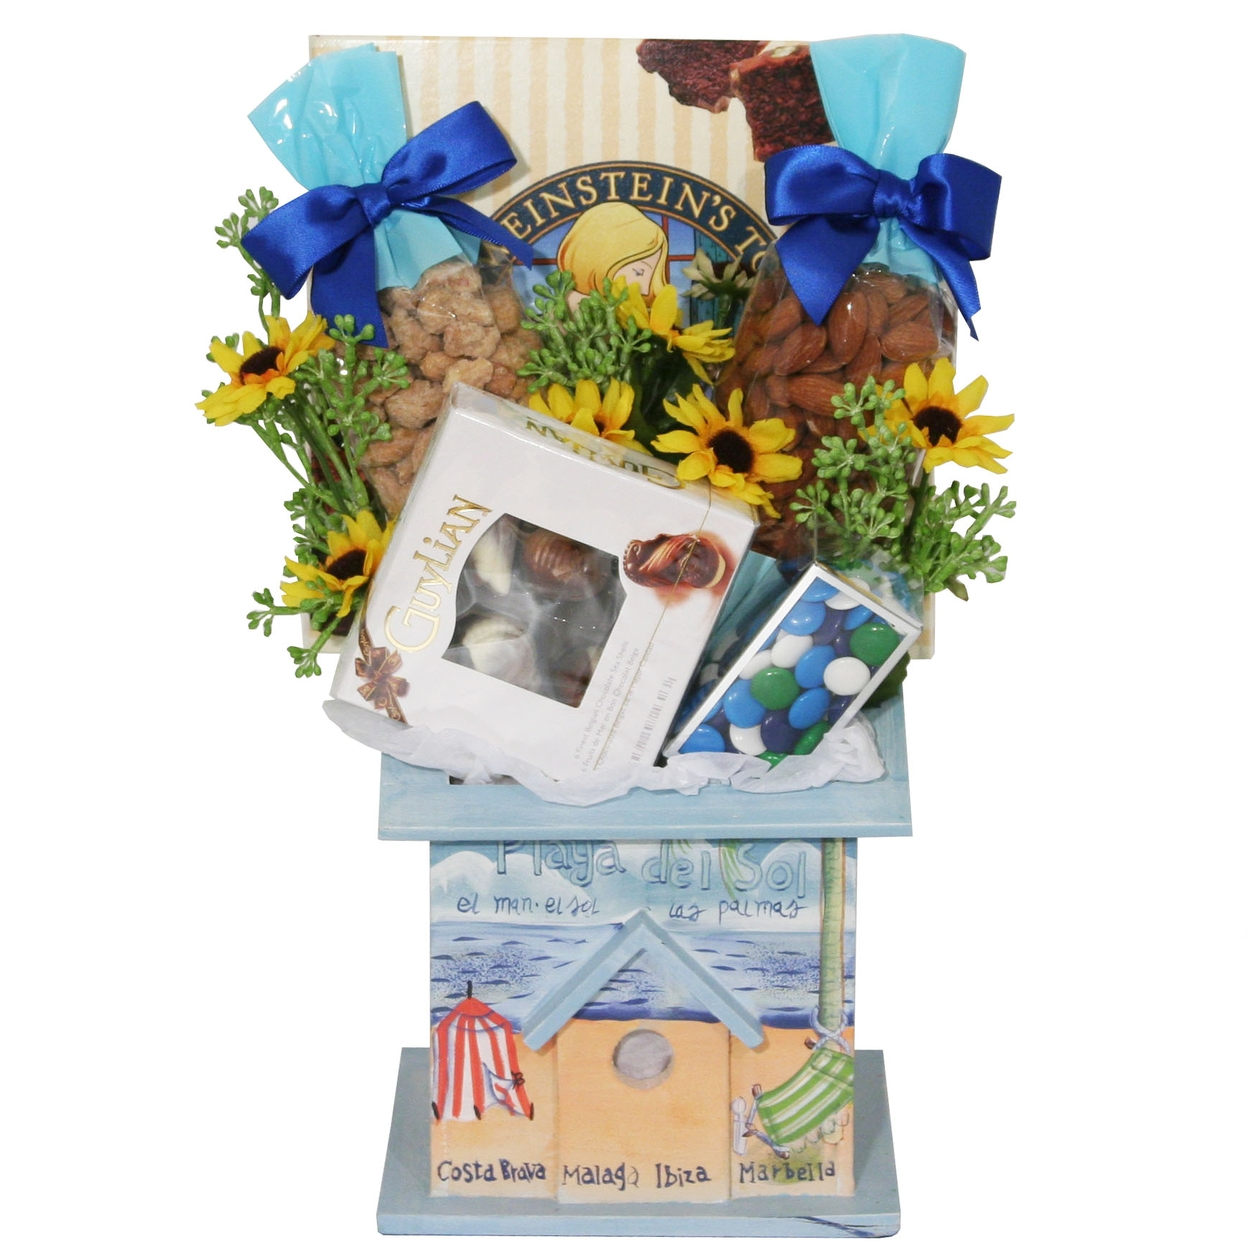 Beach home gift • house warming gifts • gift baskets by occasion • oh nuts